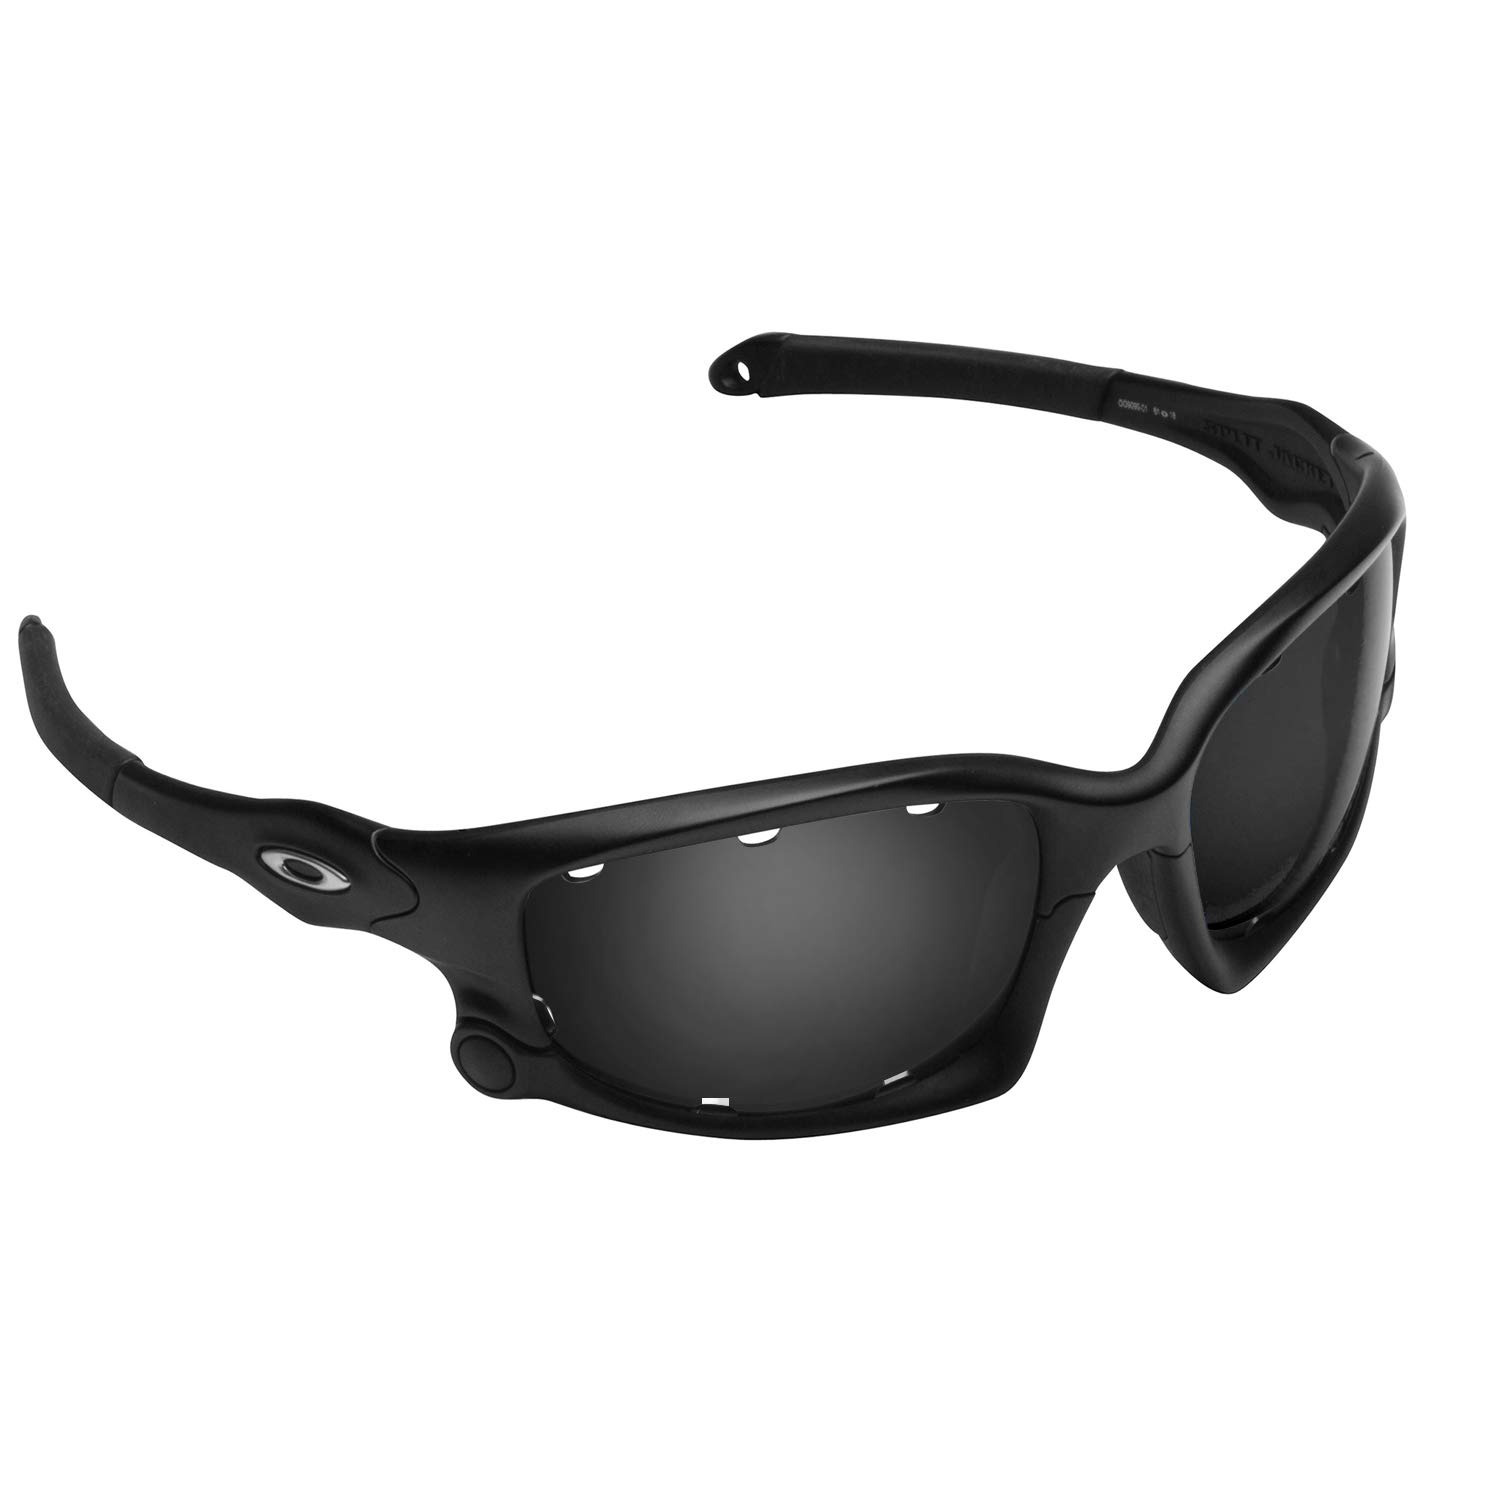 Amazon.com: Mejor Seek lentes de repuesto OAKLEY SPLIT ...